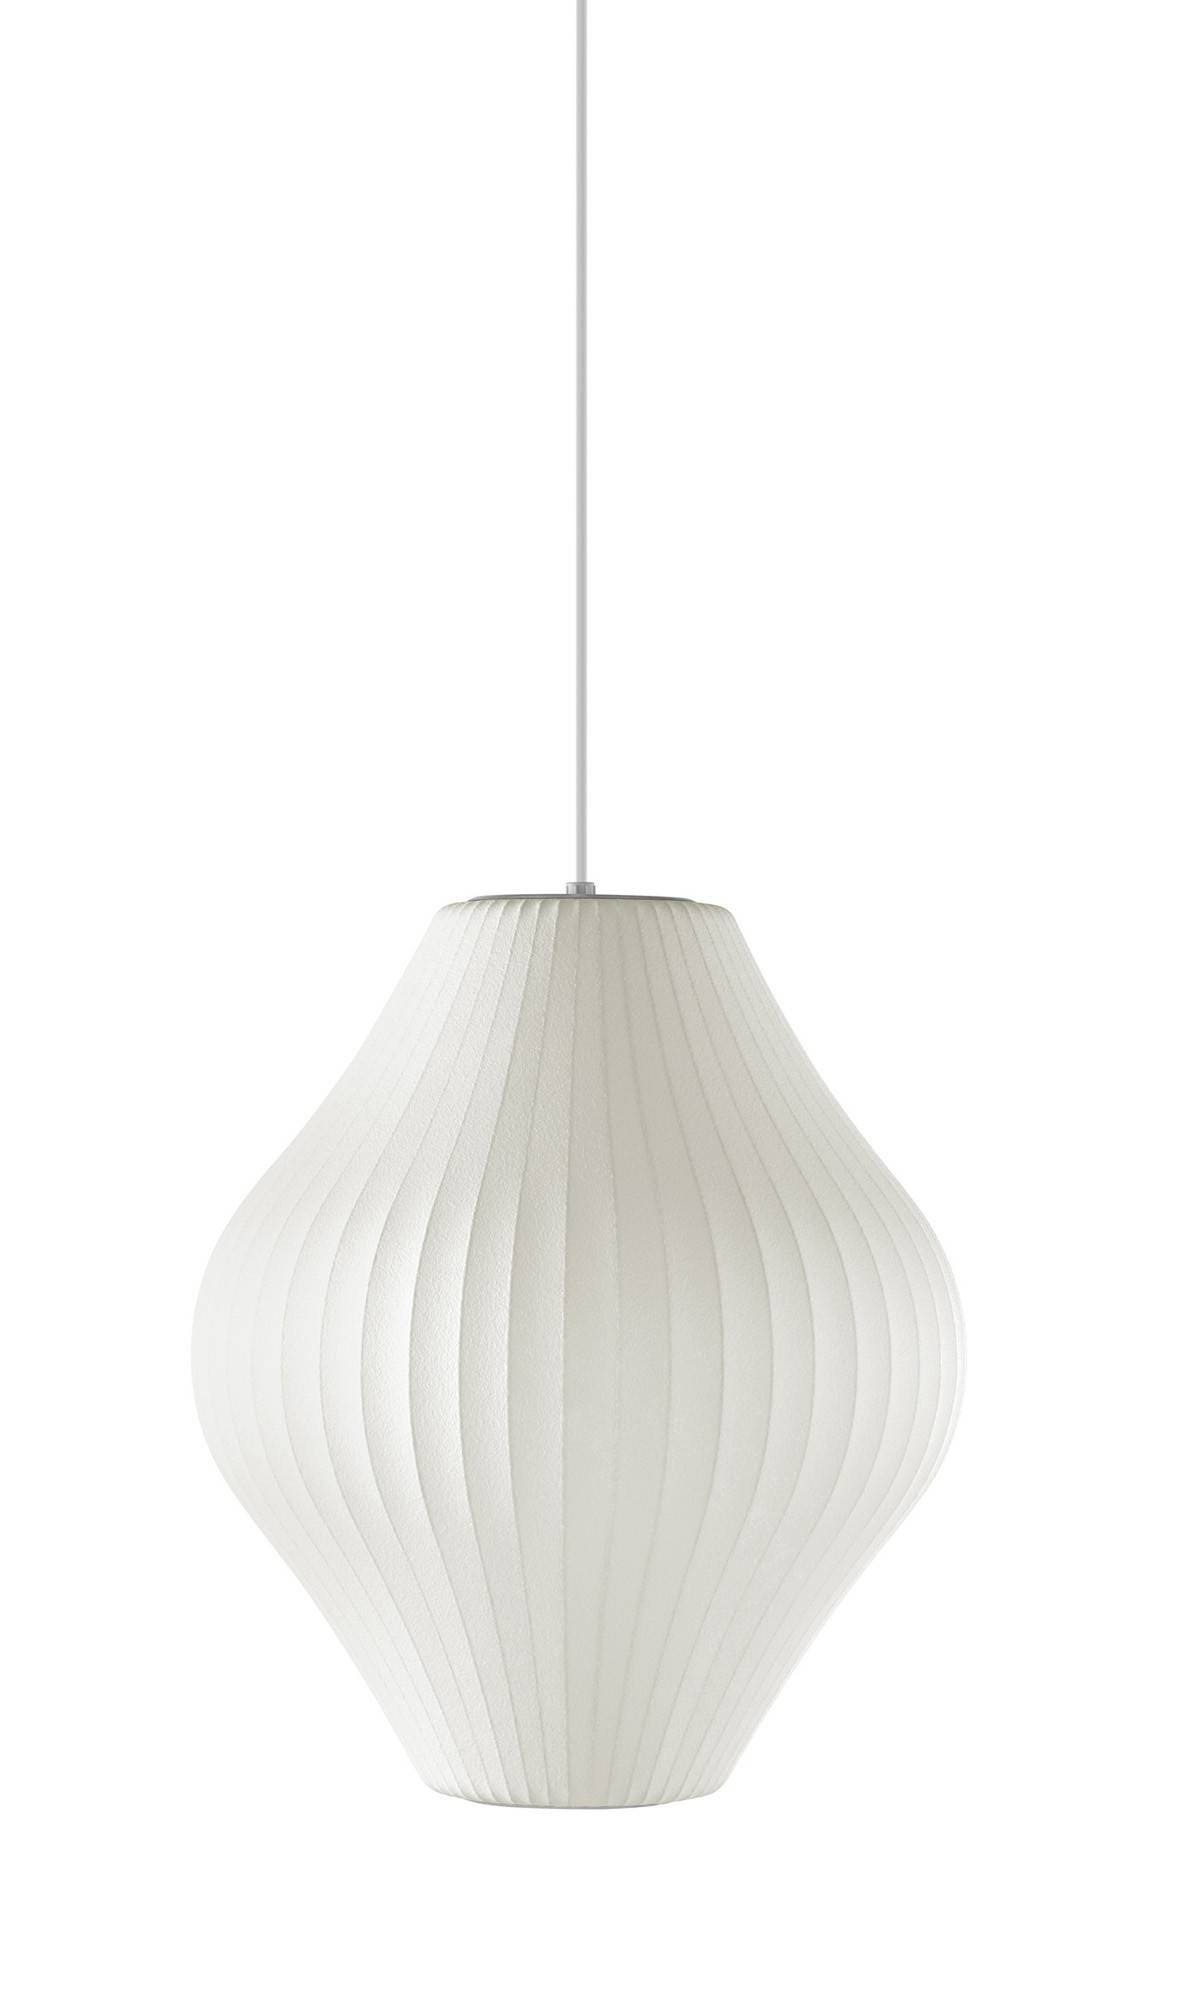 medium nelson white george bubble ball lighting lamps ceiling crisscross views more lamp